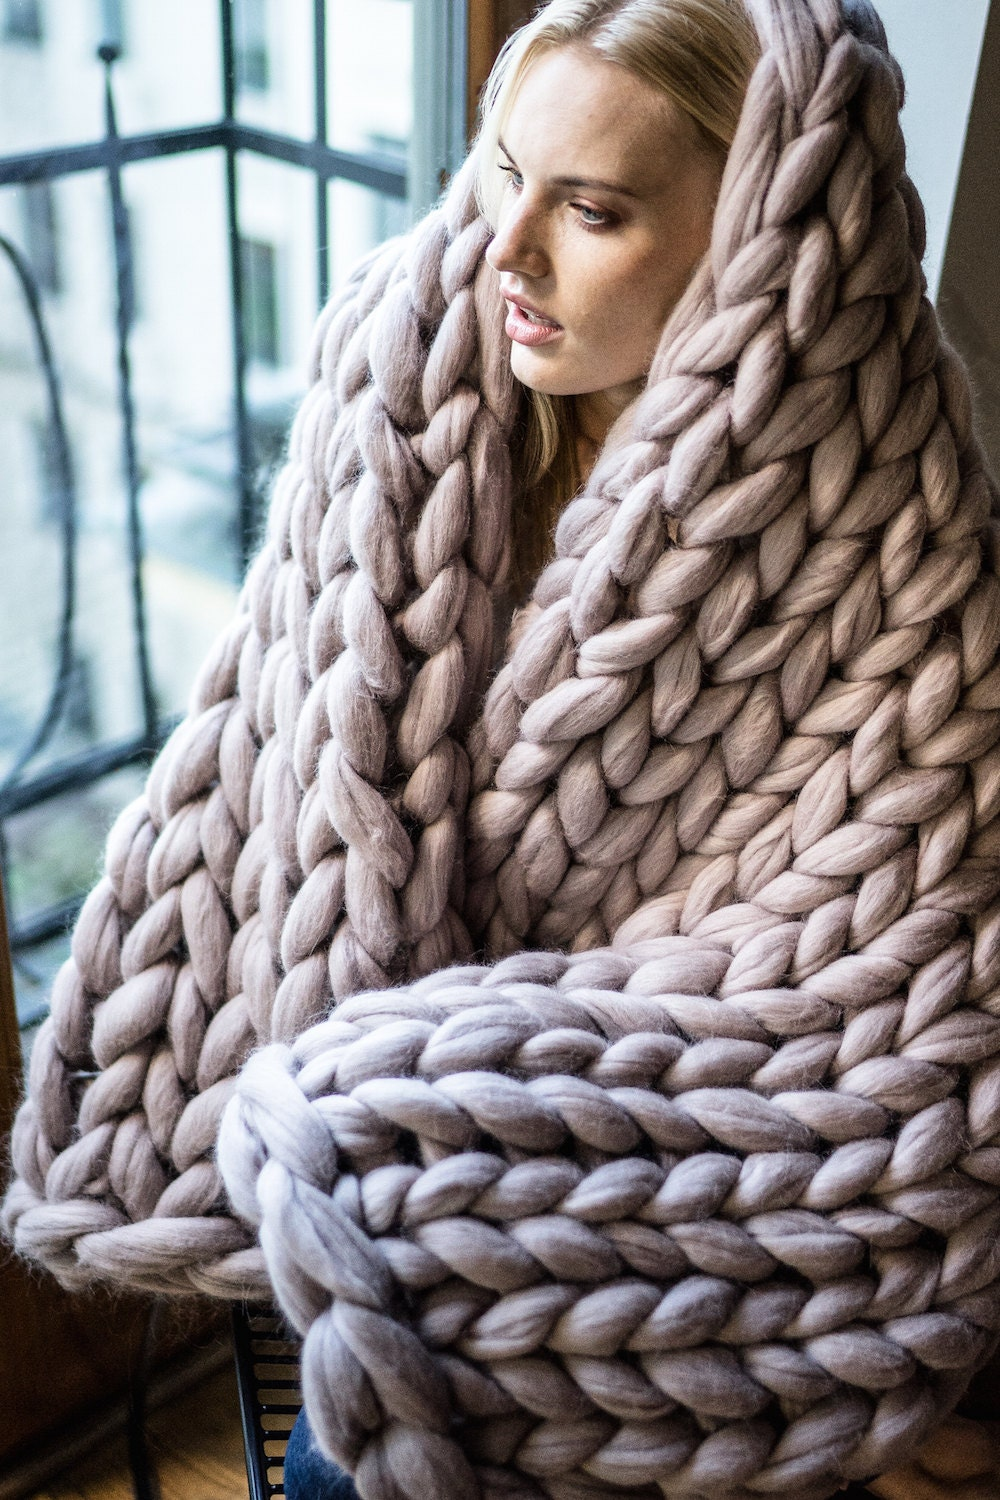 Knitting Wool Blanket : Chunky knit blanket giant yarn throw wrap arm from